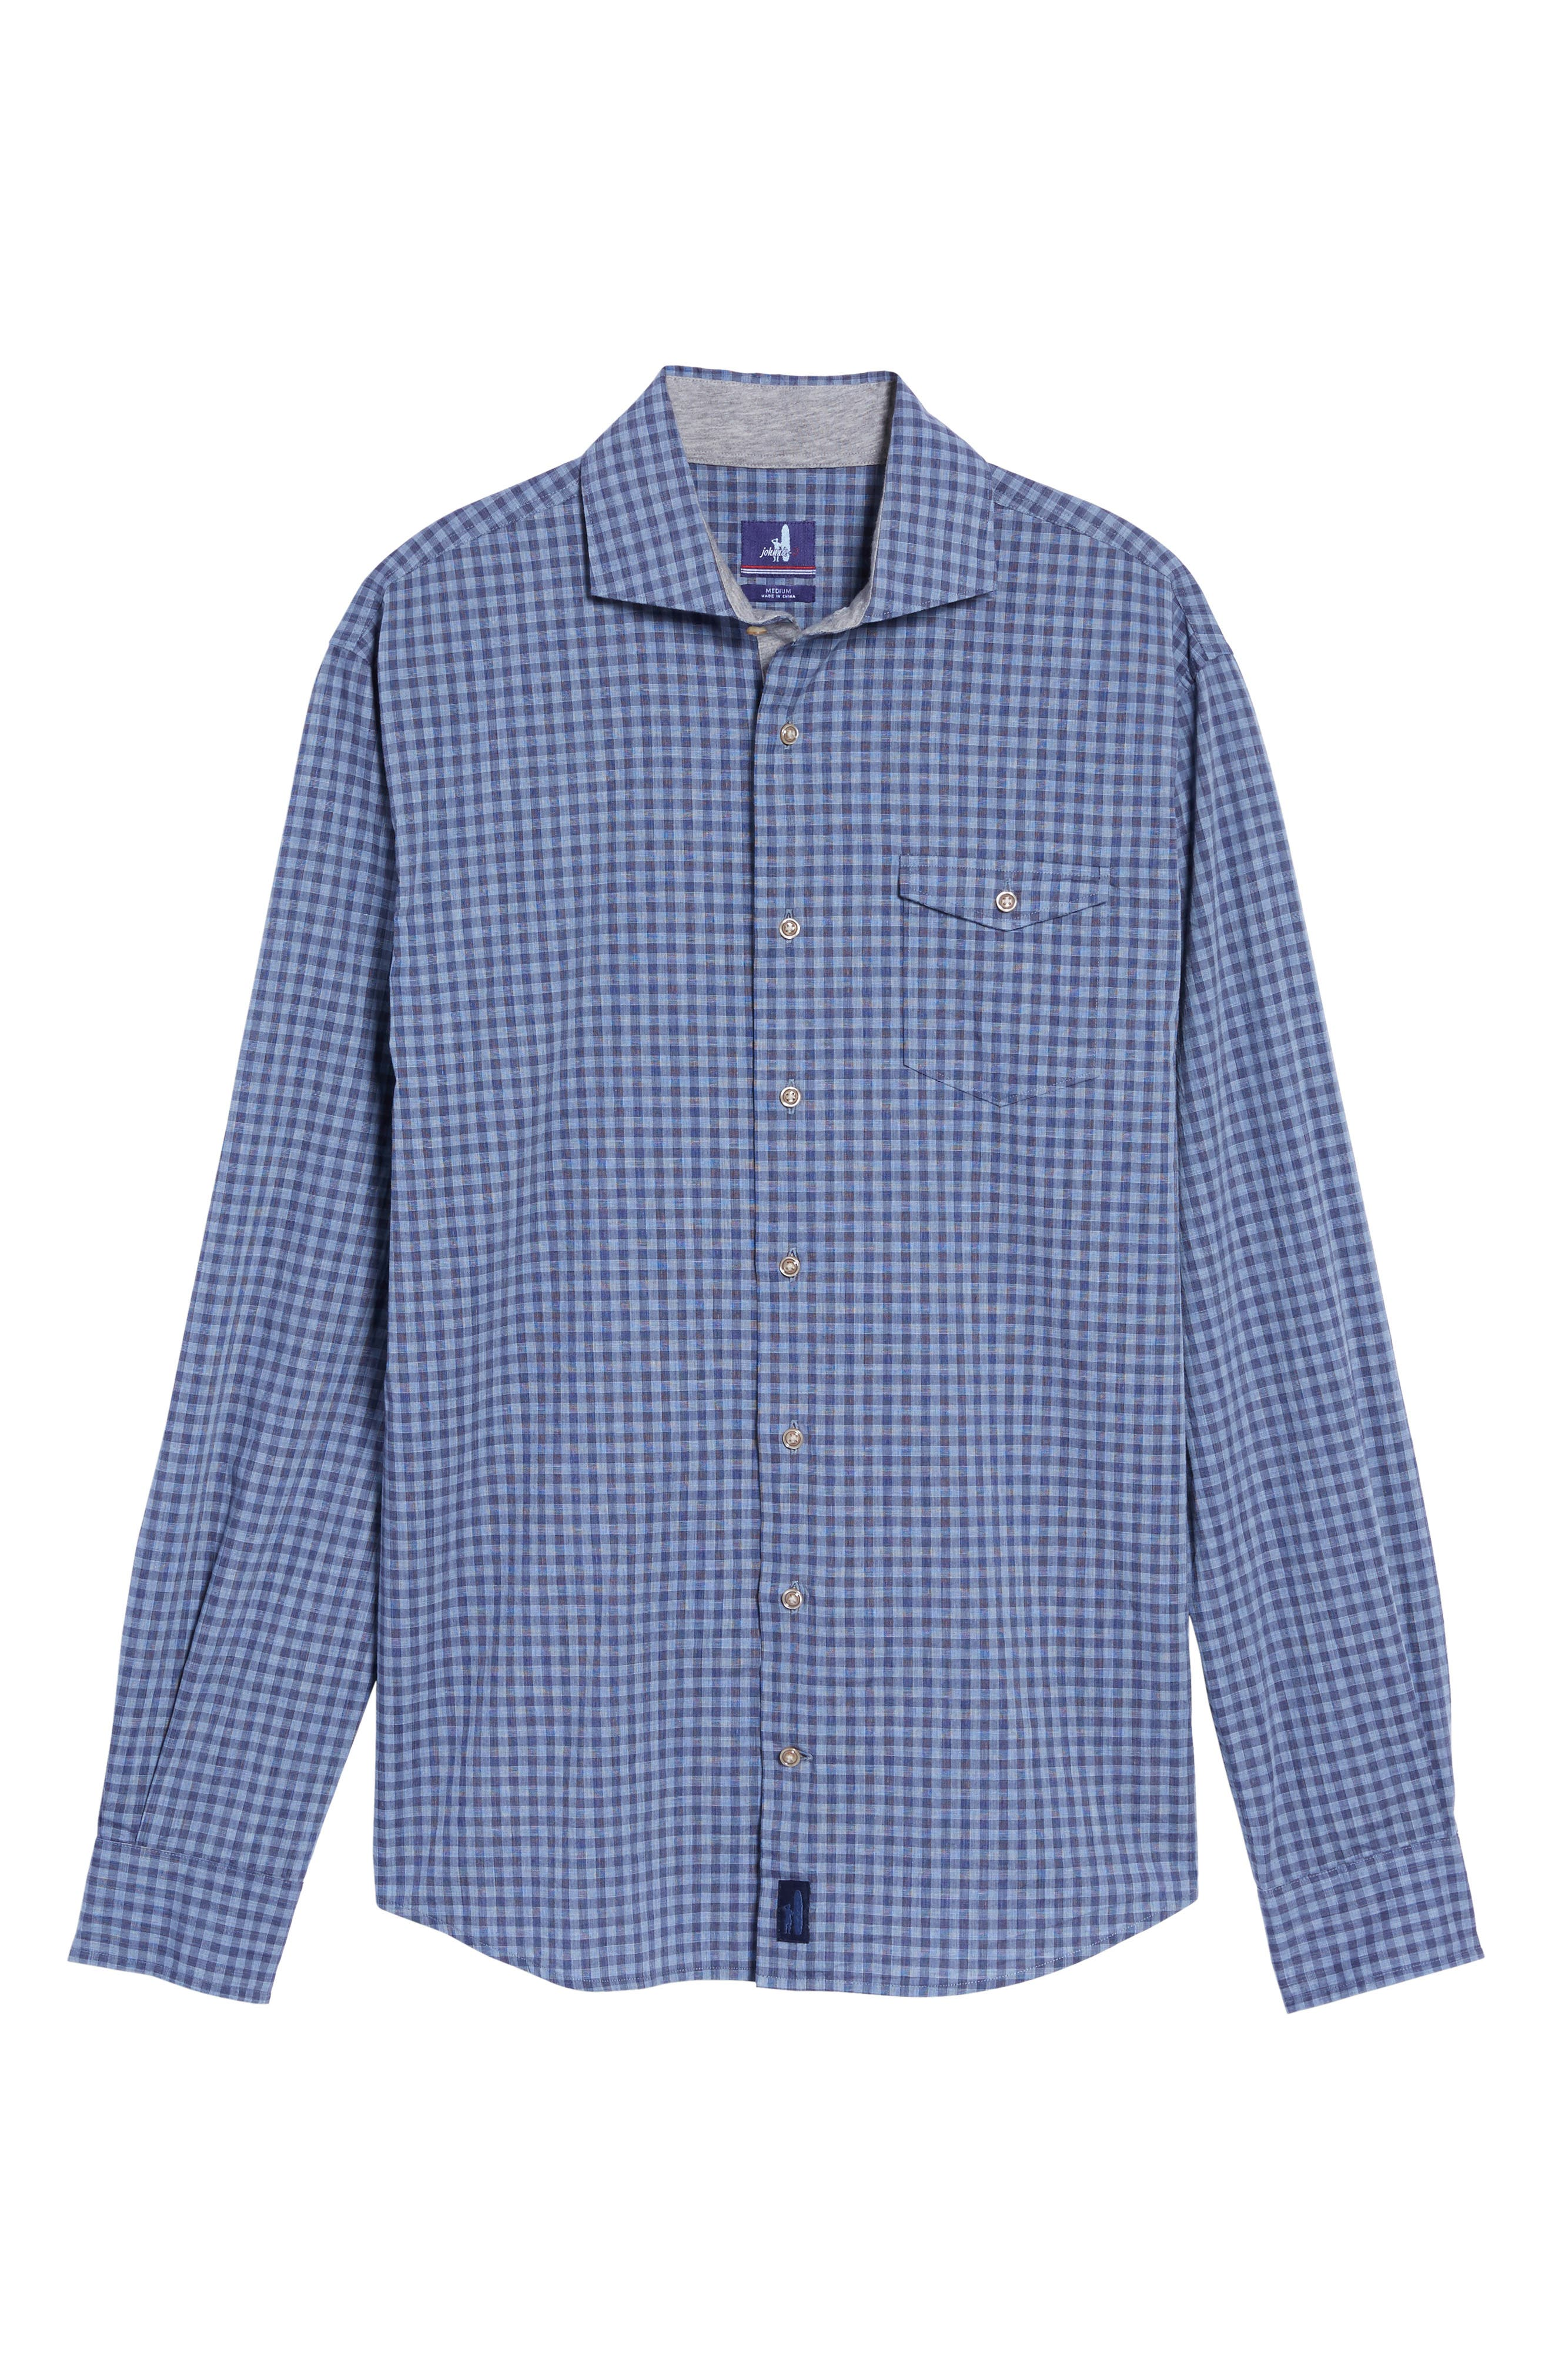 Red Rocks Check Sport Shirt,                             Alternate thumbnail 6, color,                             Abyss